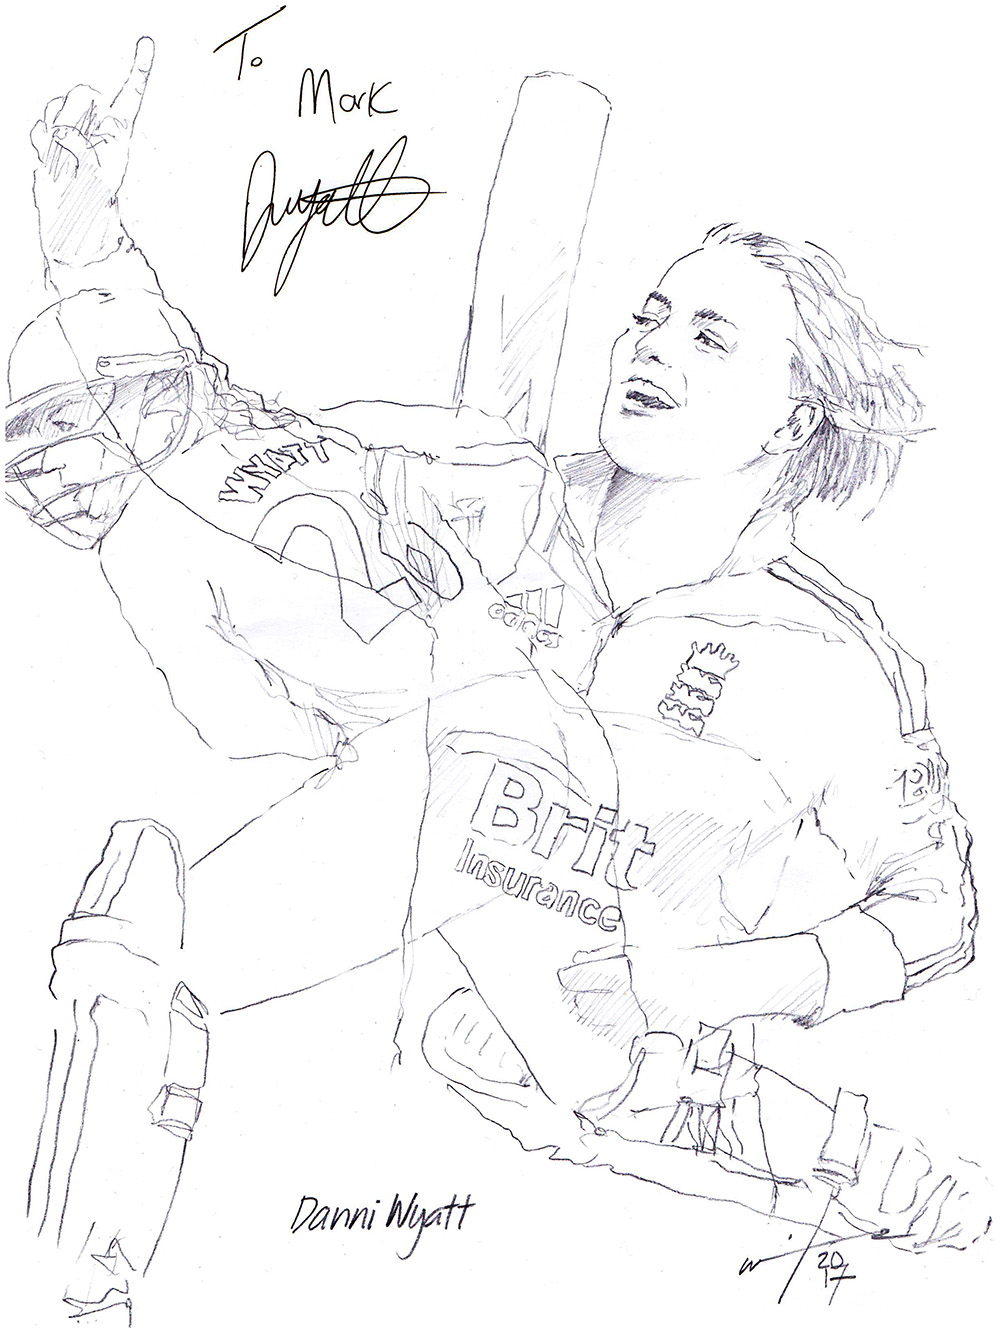 Autographed drawing of cricketer Danni Wyatt